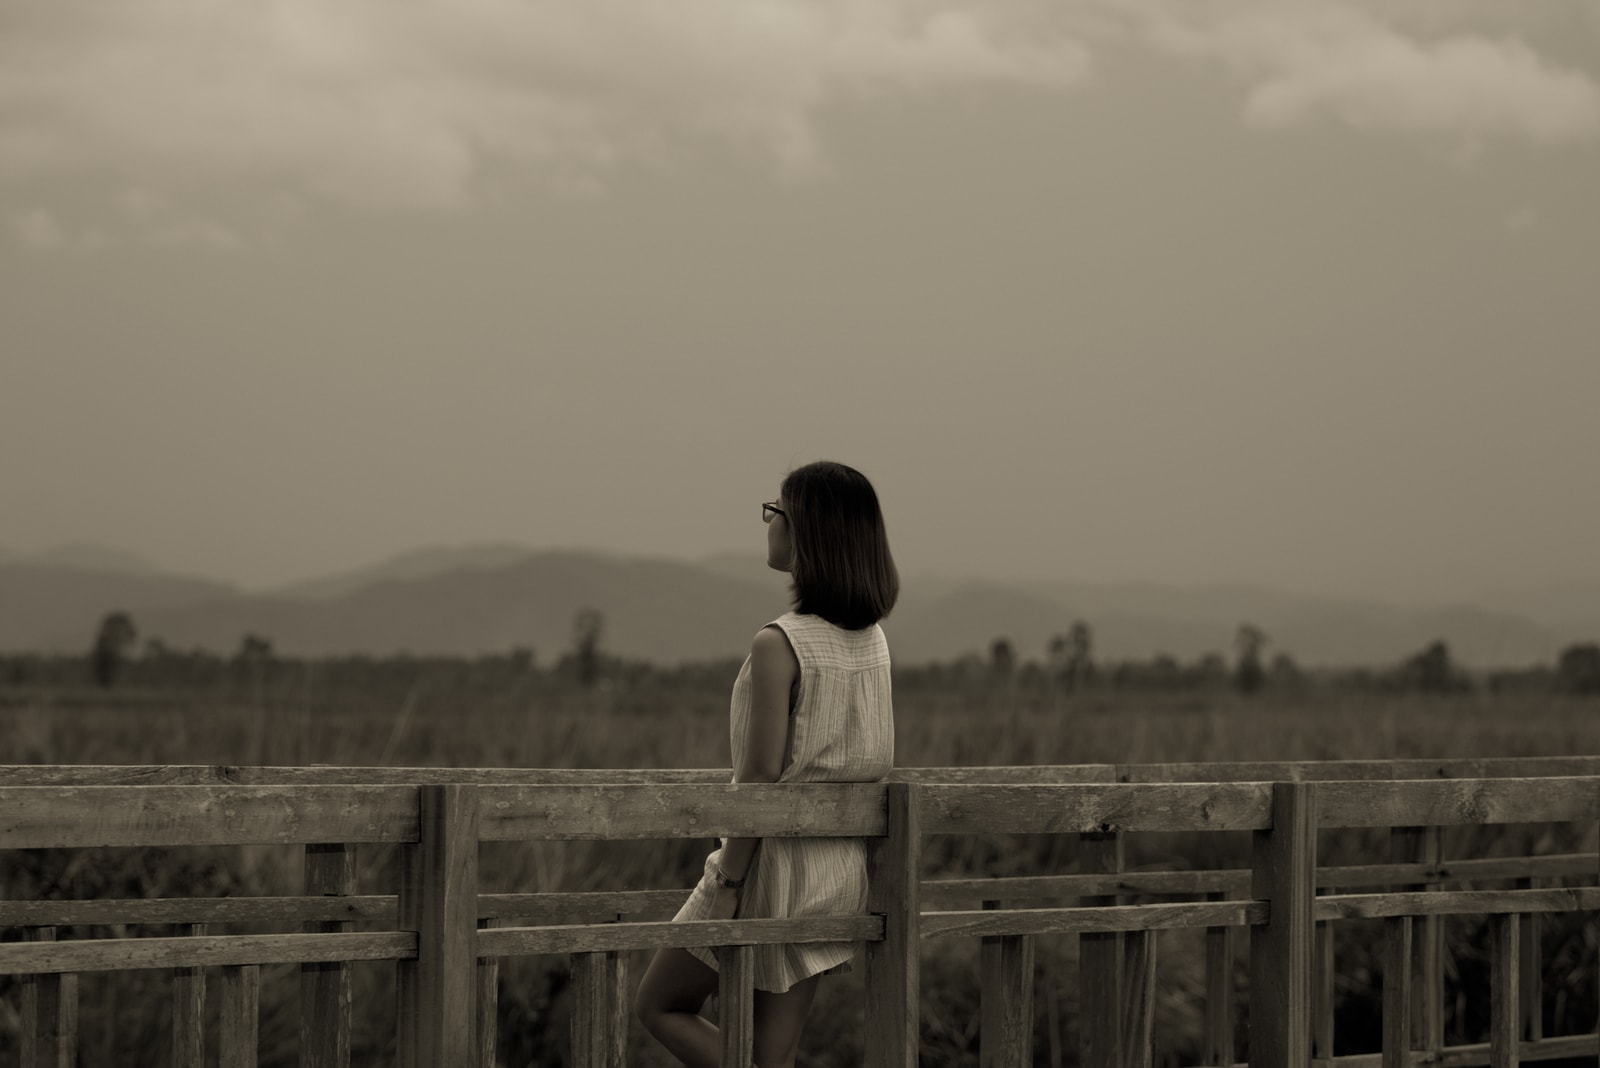 the woman stands leaning against the railing with her back turned